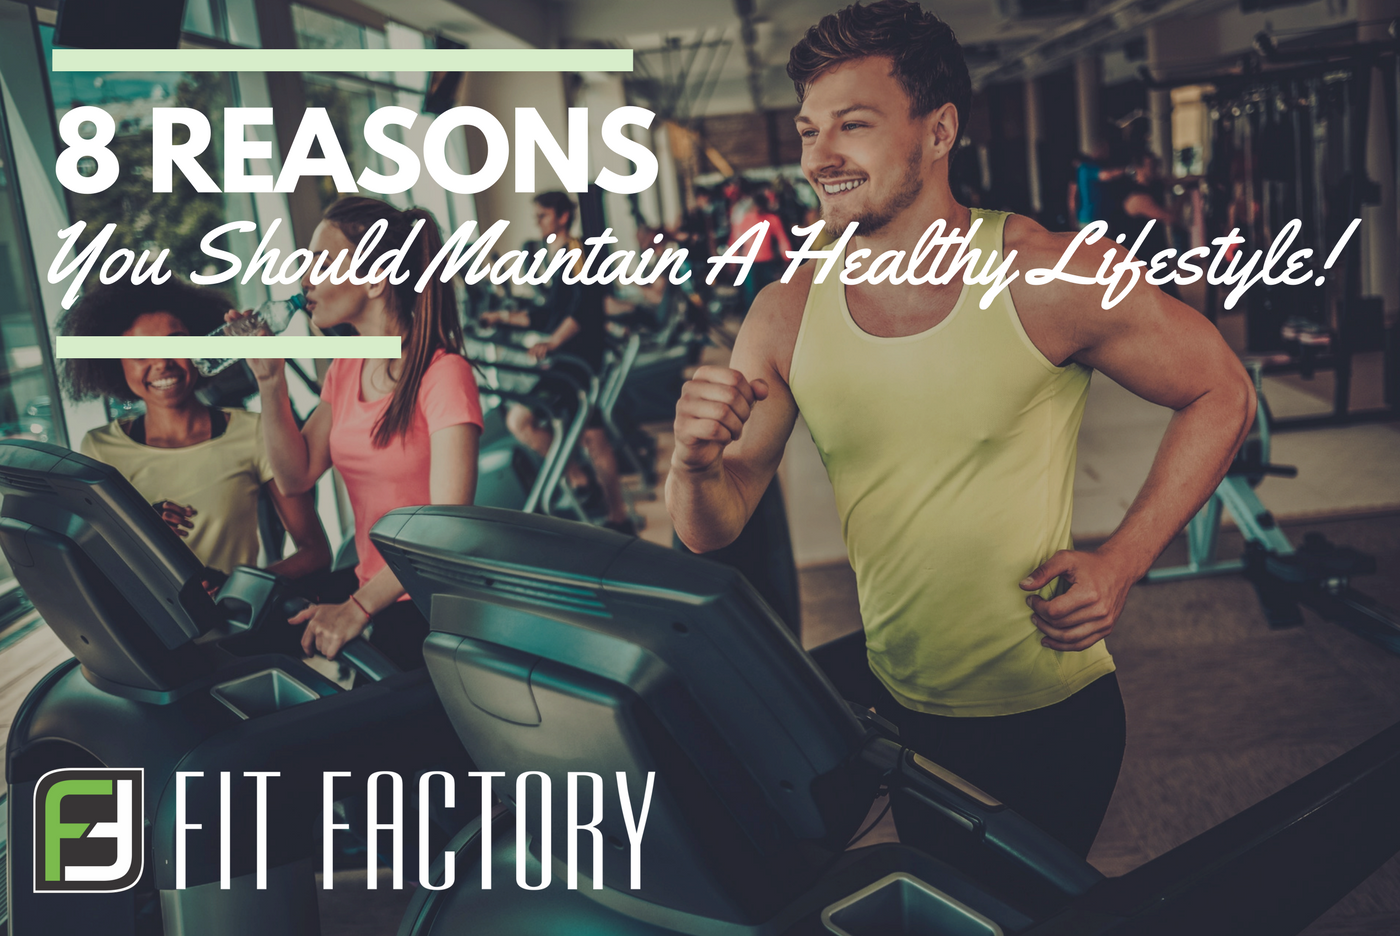 8 Reasons To Maintain A Healthy Lifestyle